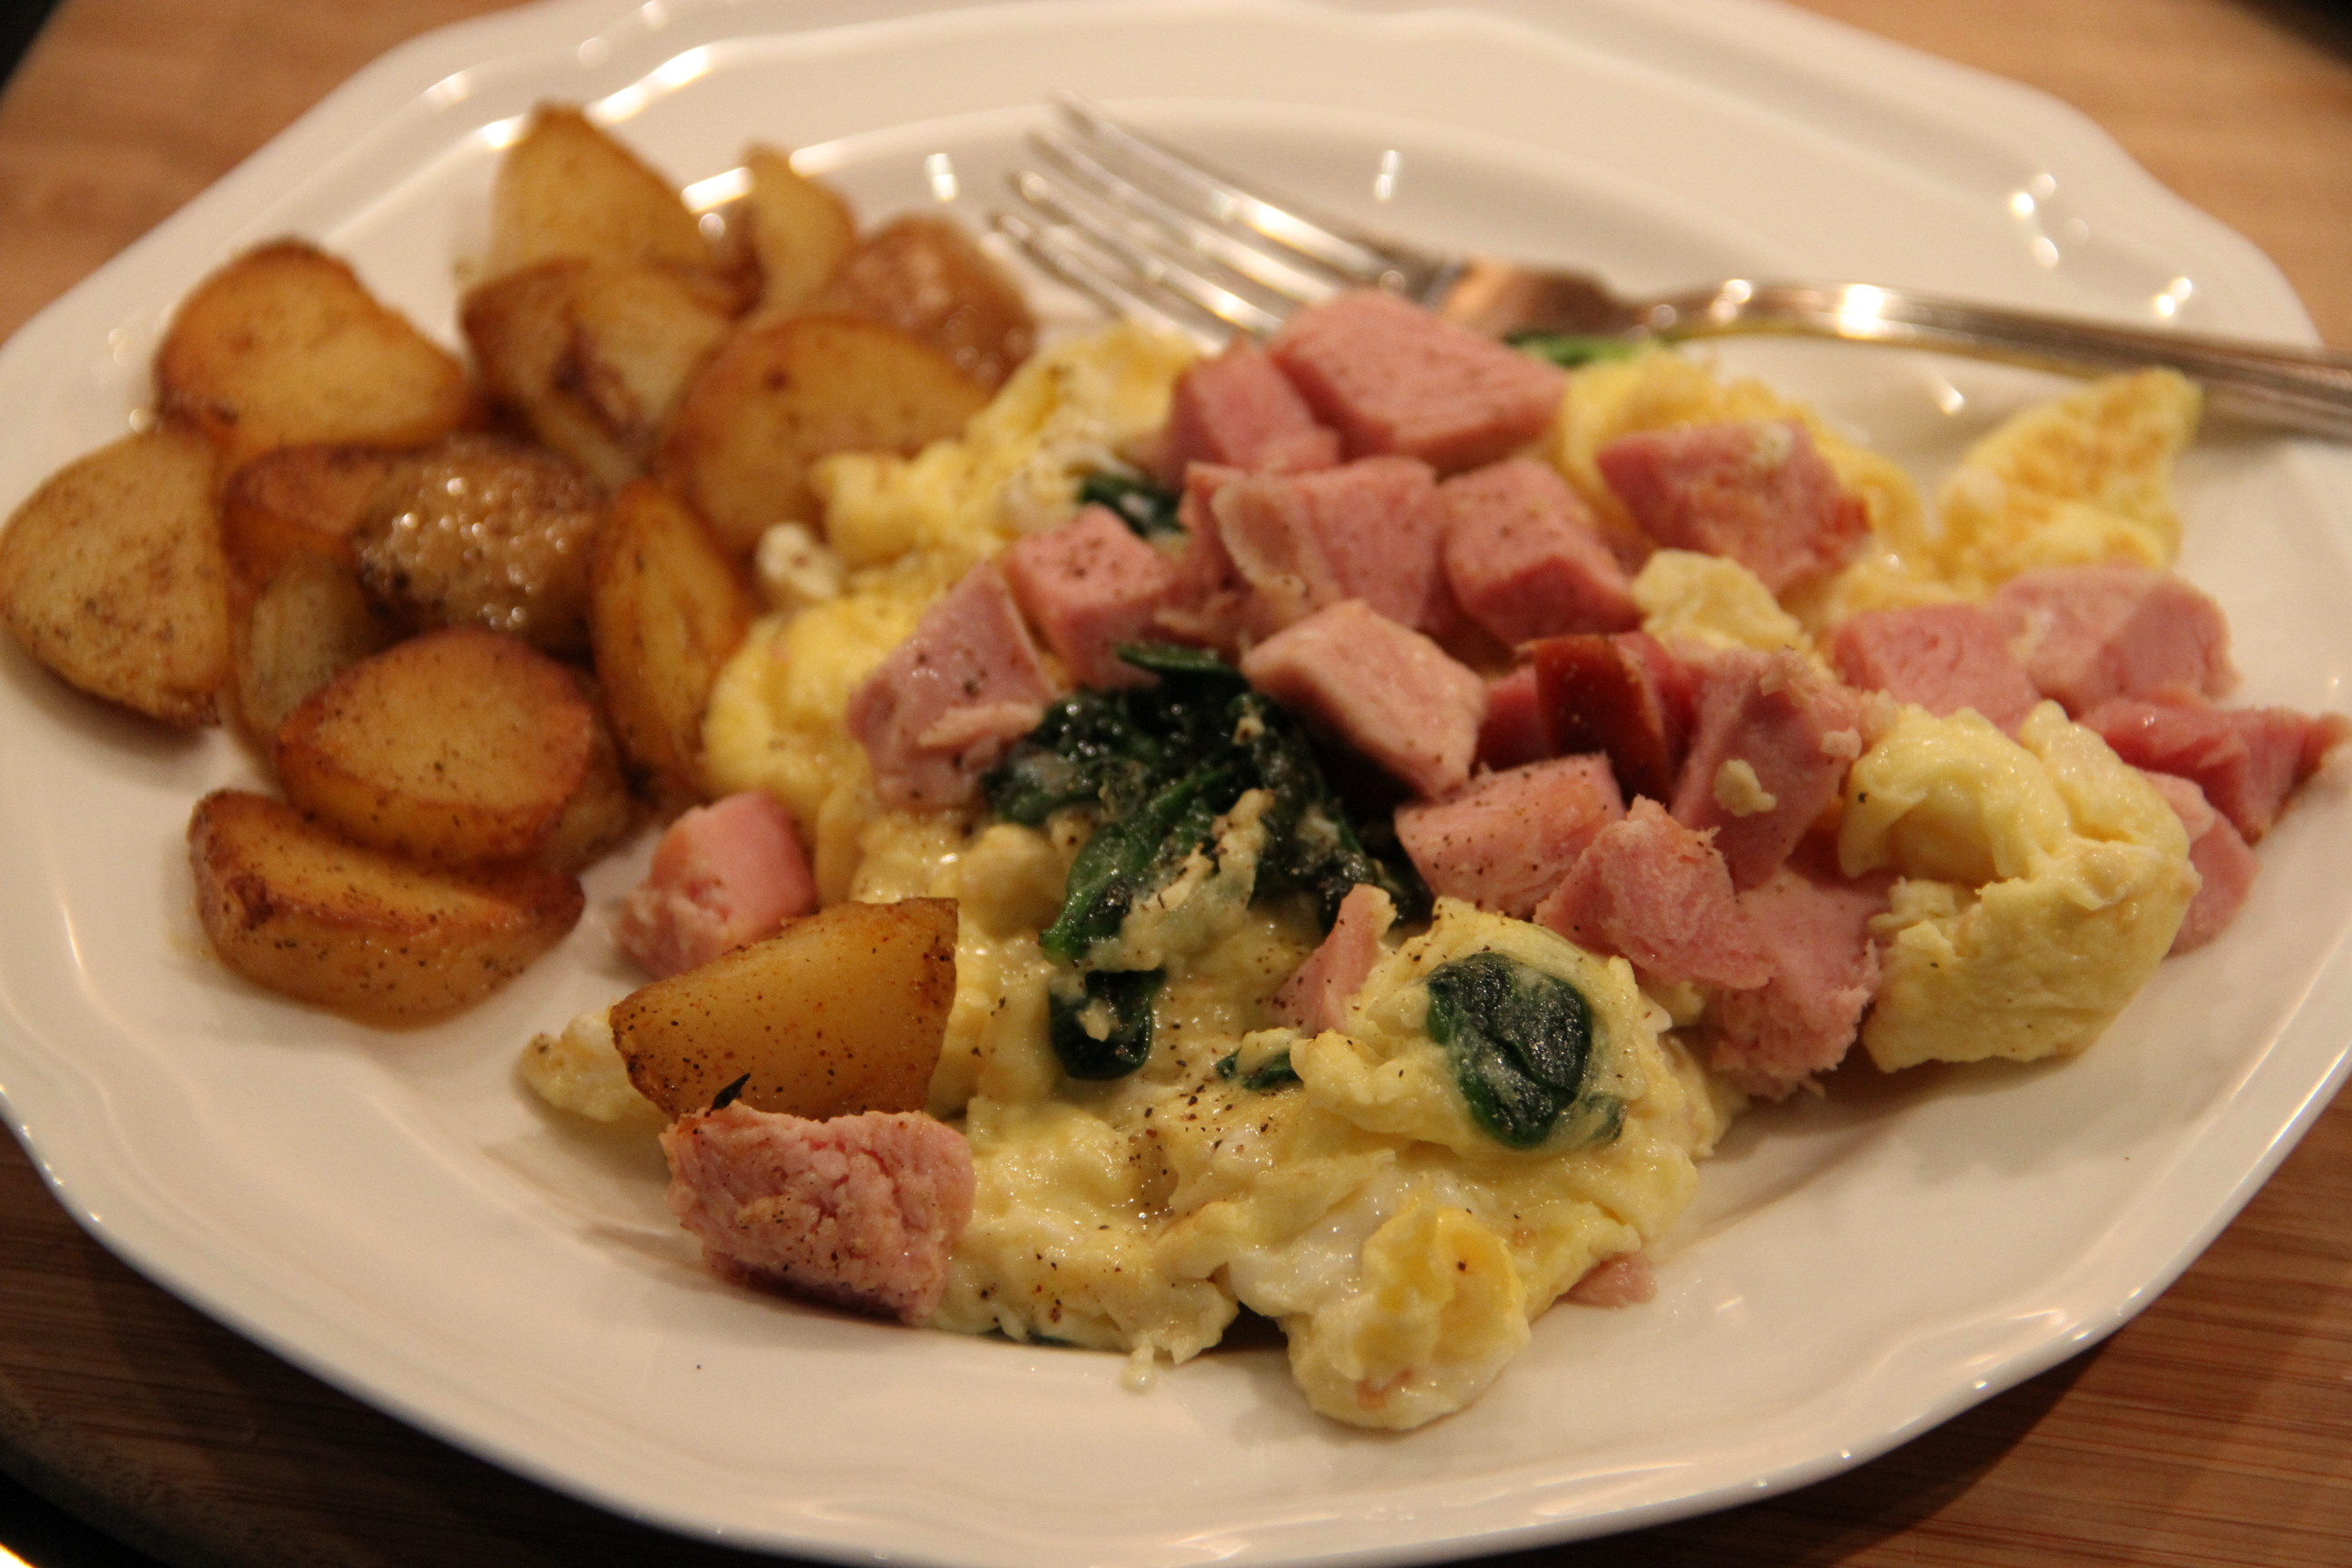 Green Eggs and Ham breakfast in bed breakfast recipes charles p ...